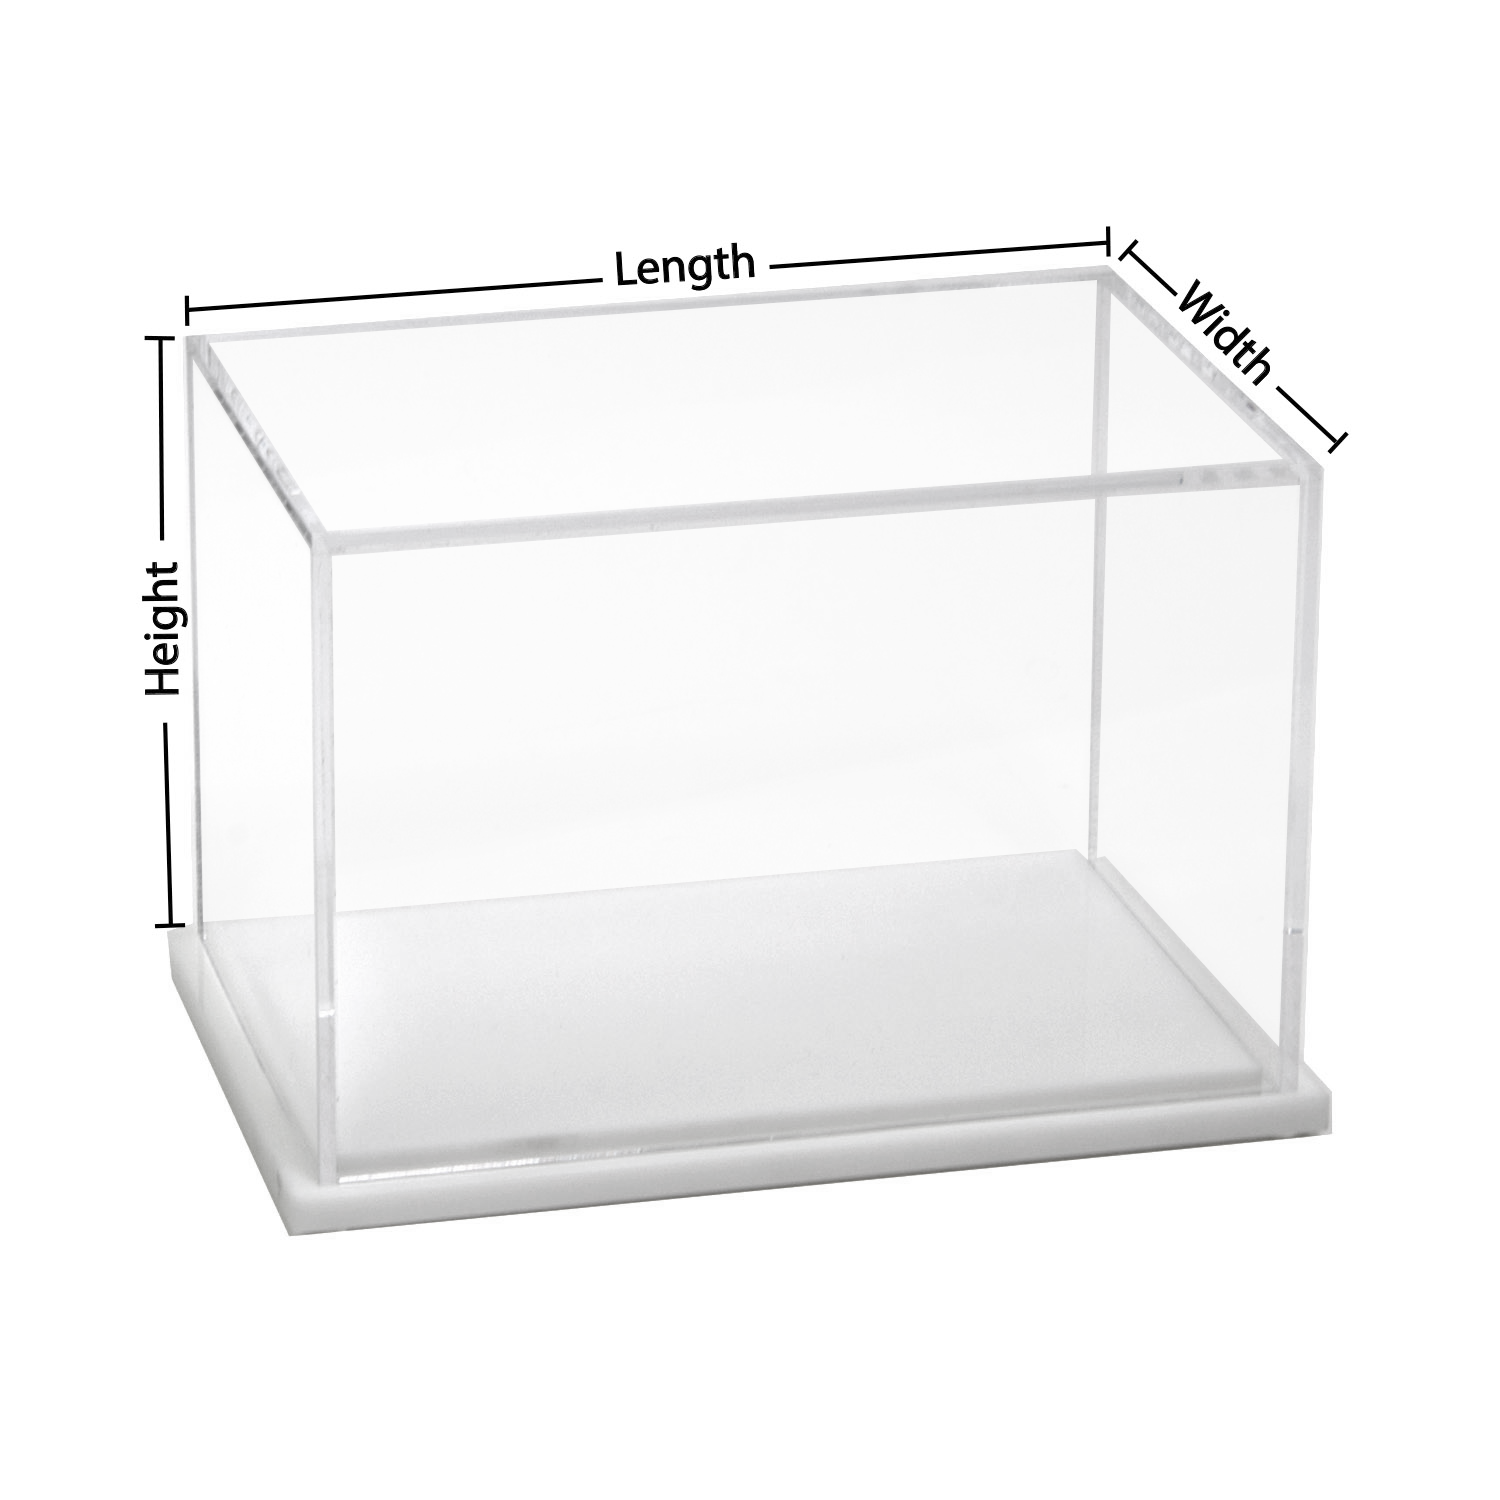 Mm Size Glass Clear Plastic Display Containers